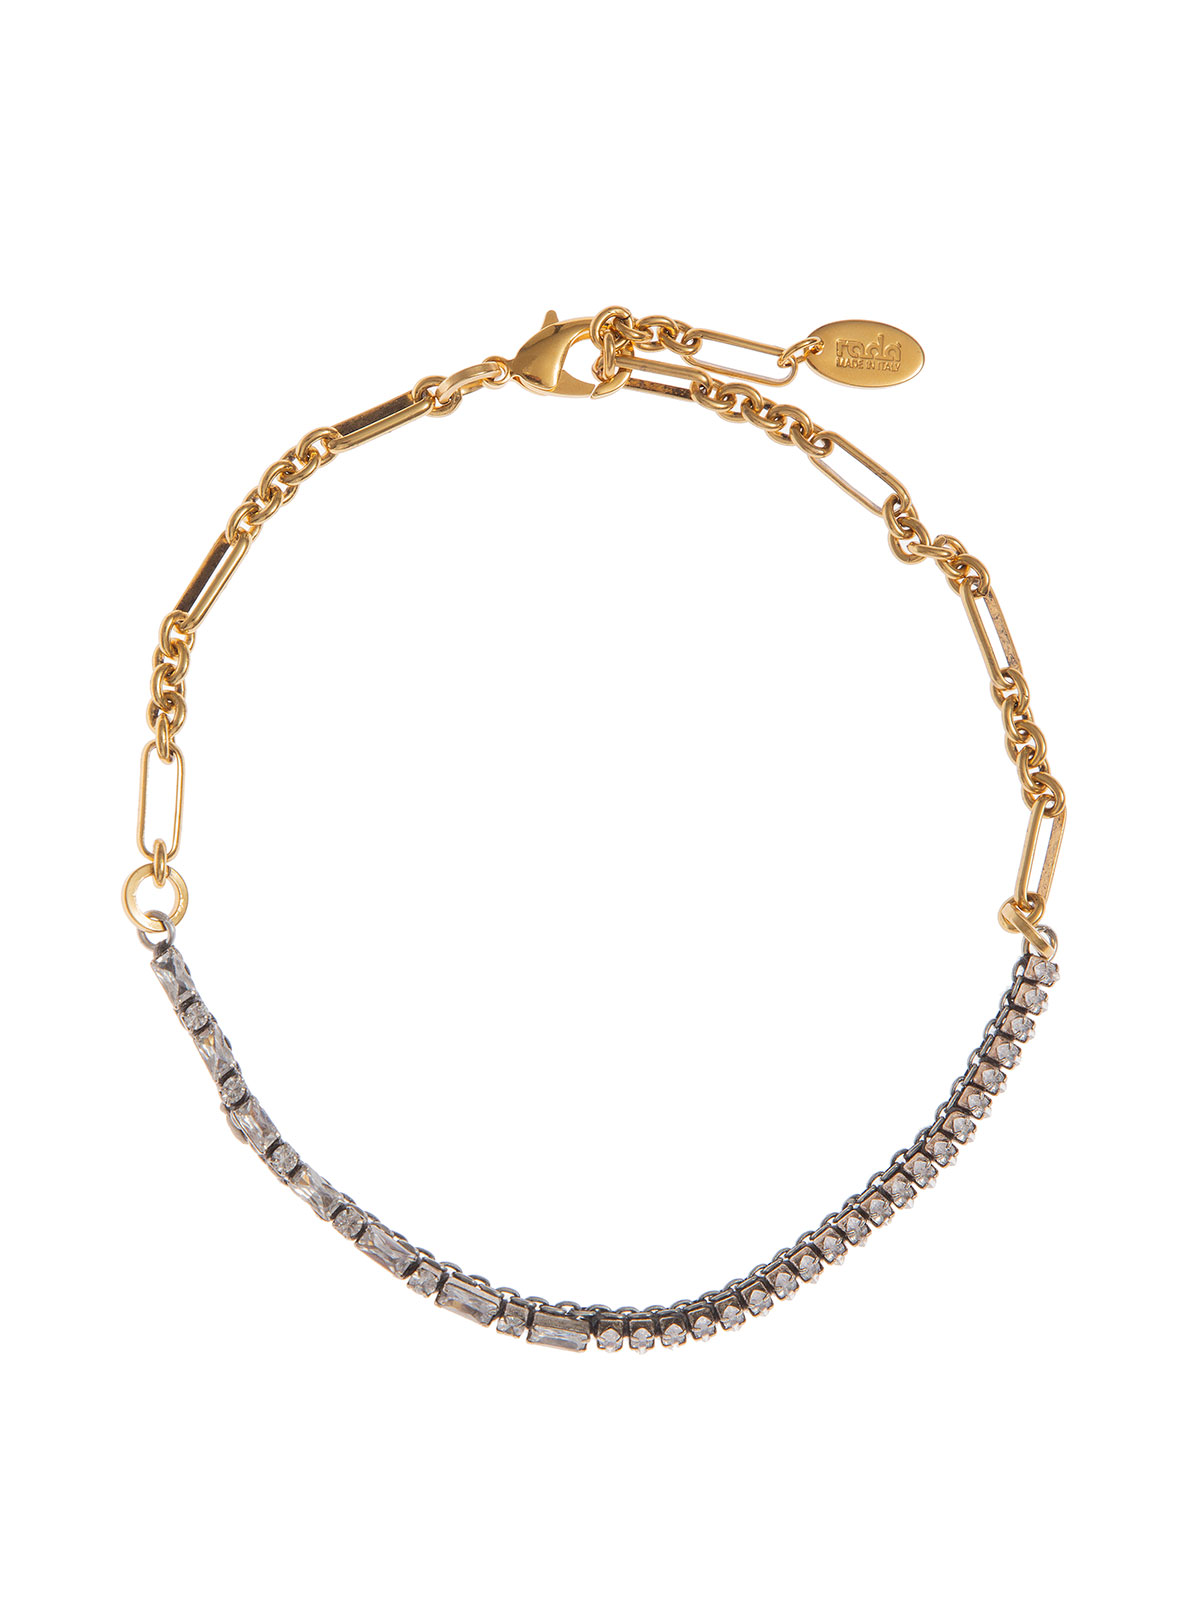 Chain choker with crystal stones